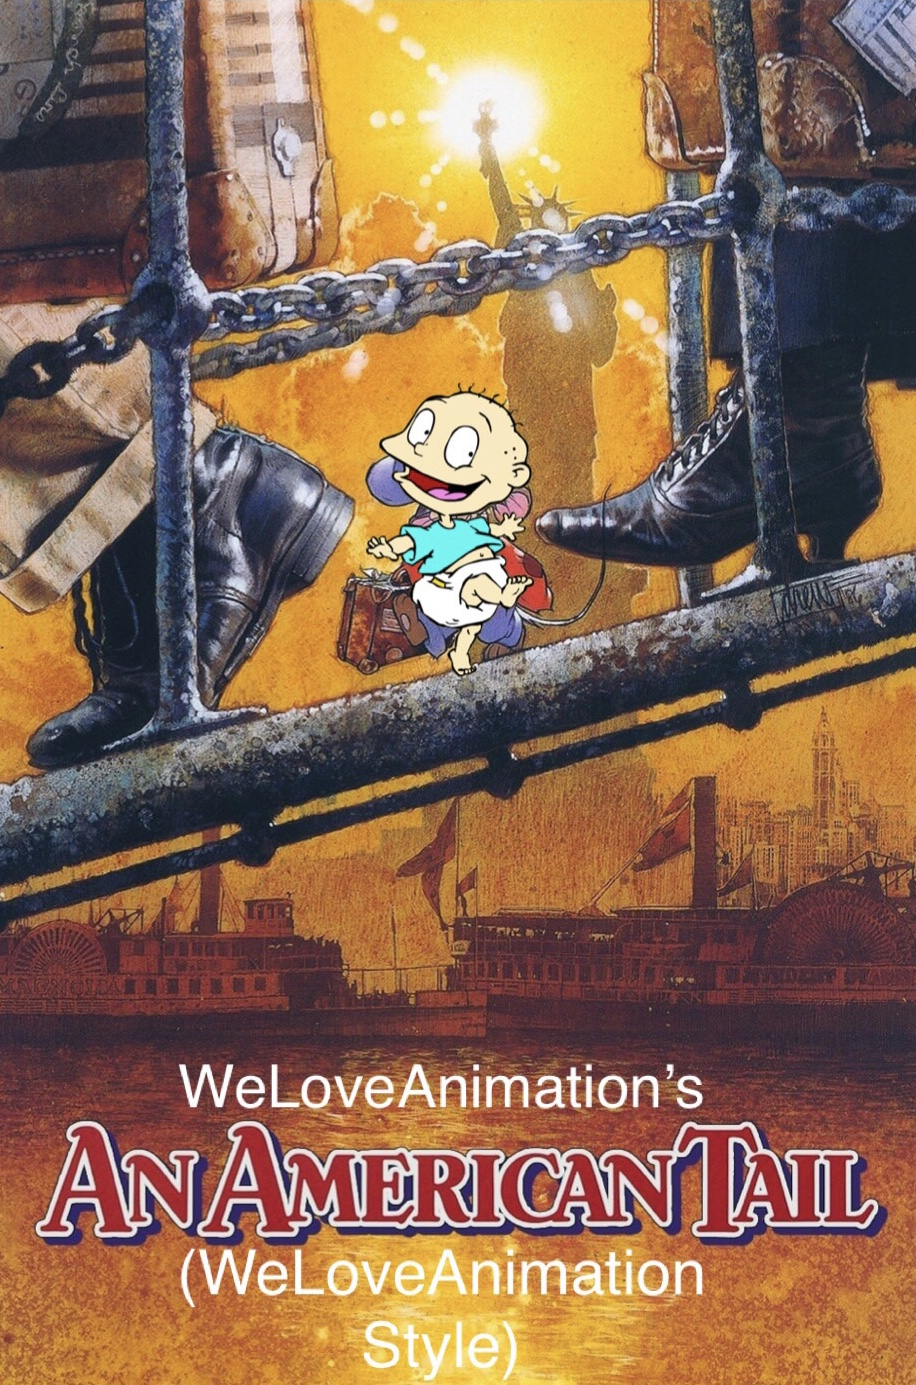 An American Tail (WeLoveAnimation Style)